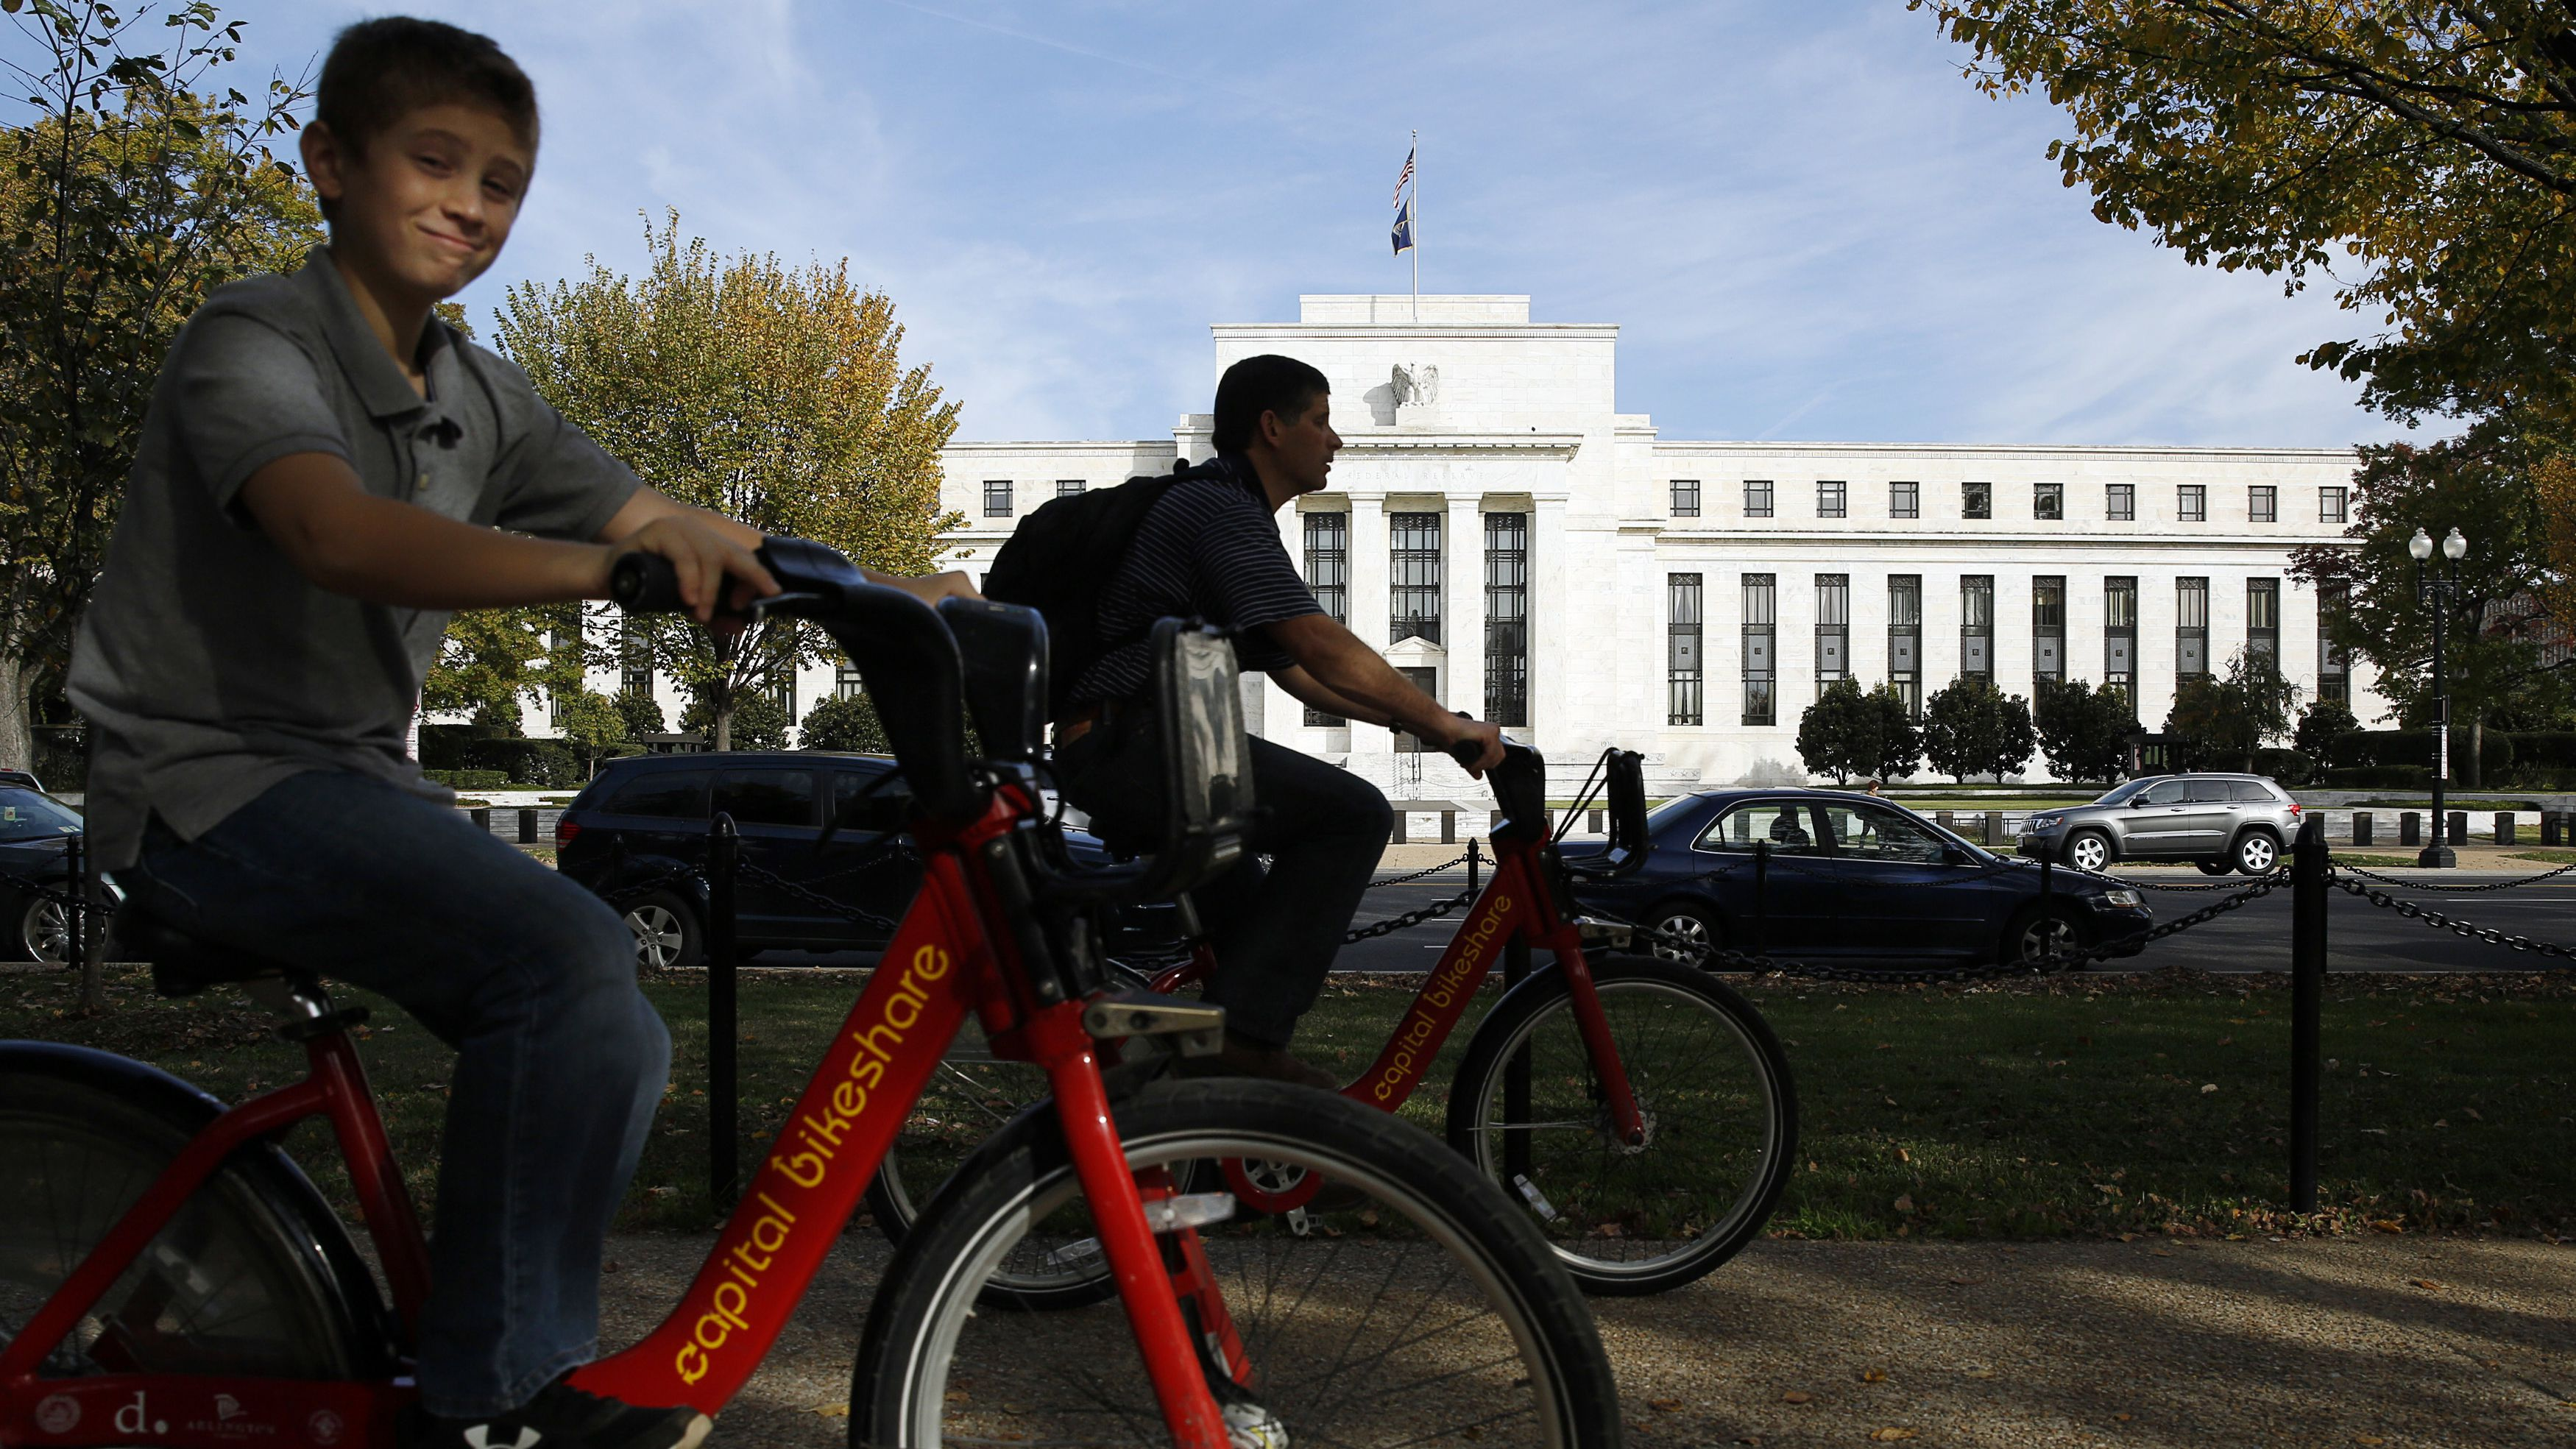 Cyclists peddle past the United States Federal Reserve Board building (rear) in Washington October 28, 2014. The U.S. Federal Reserve this week will likely reinforce its stated willingness to wait a long while before hiking interest rates after a volatile month in financial markets that saw some measure of inflation expectations drop worryingly low. REUTERS/Gary Cameron (UNITED STATES - Tags: BUSINESS POLITICS)